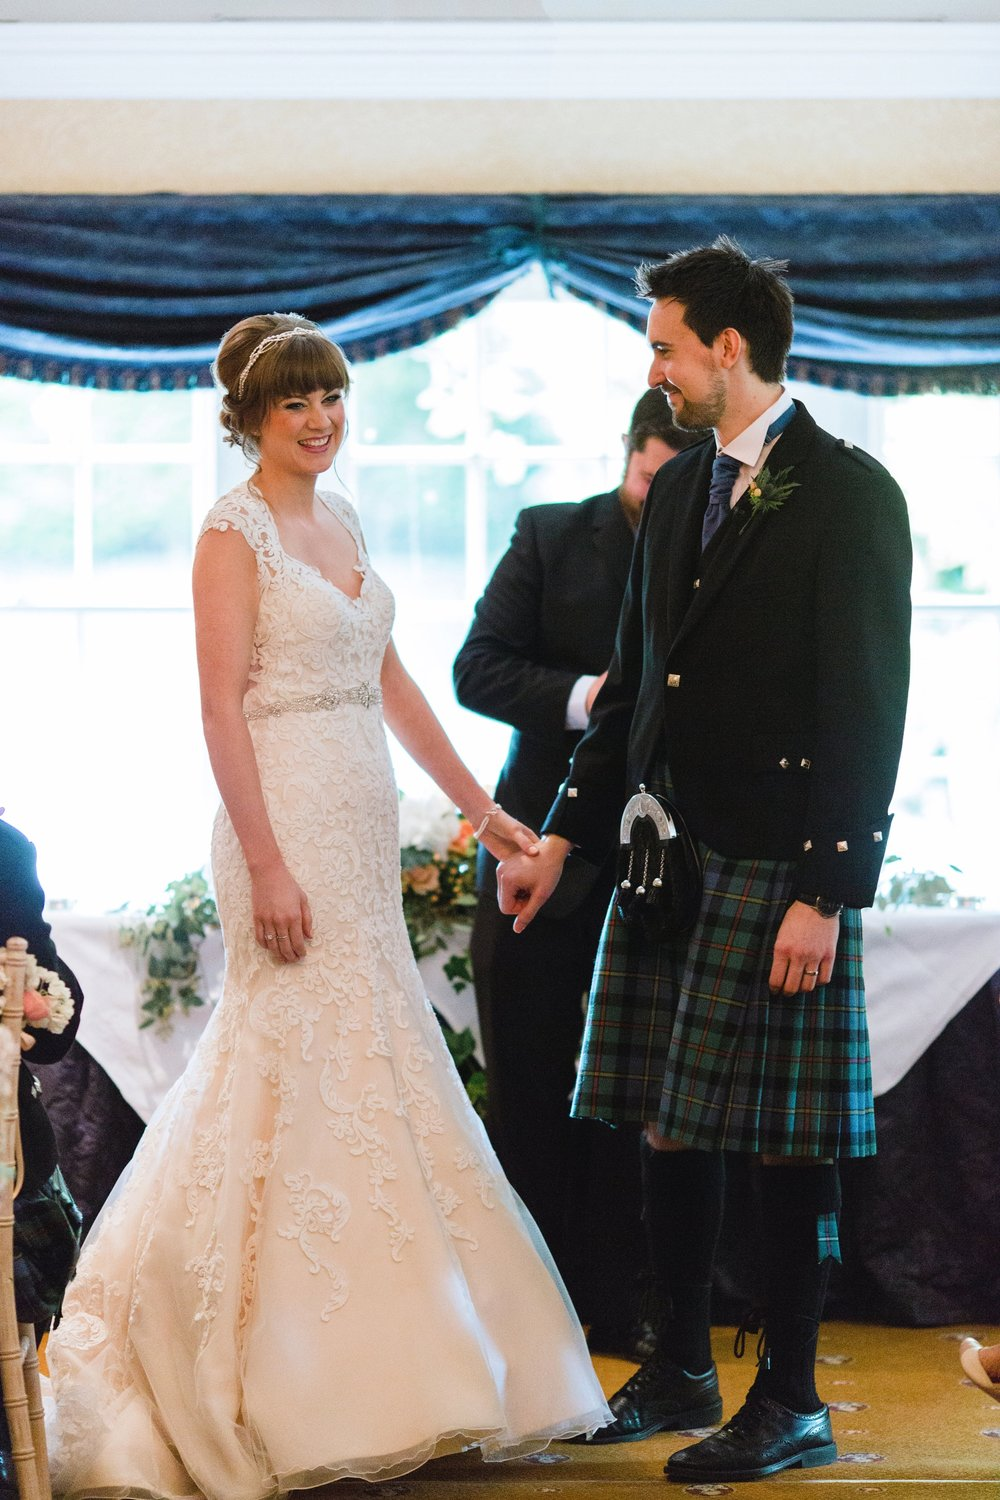 ScottishItalianRomanCampWedding16-99.jpg